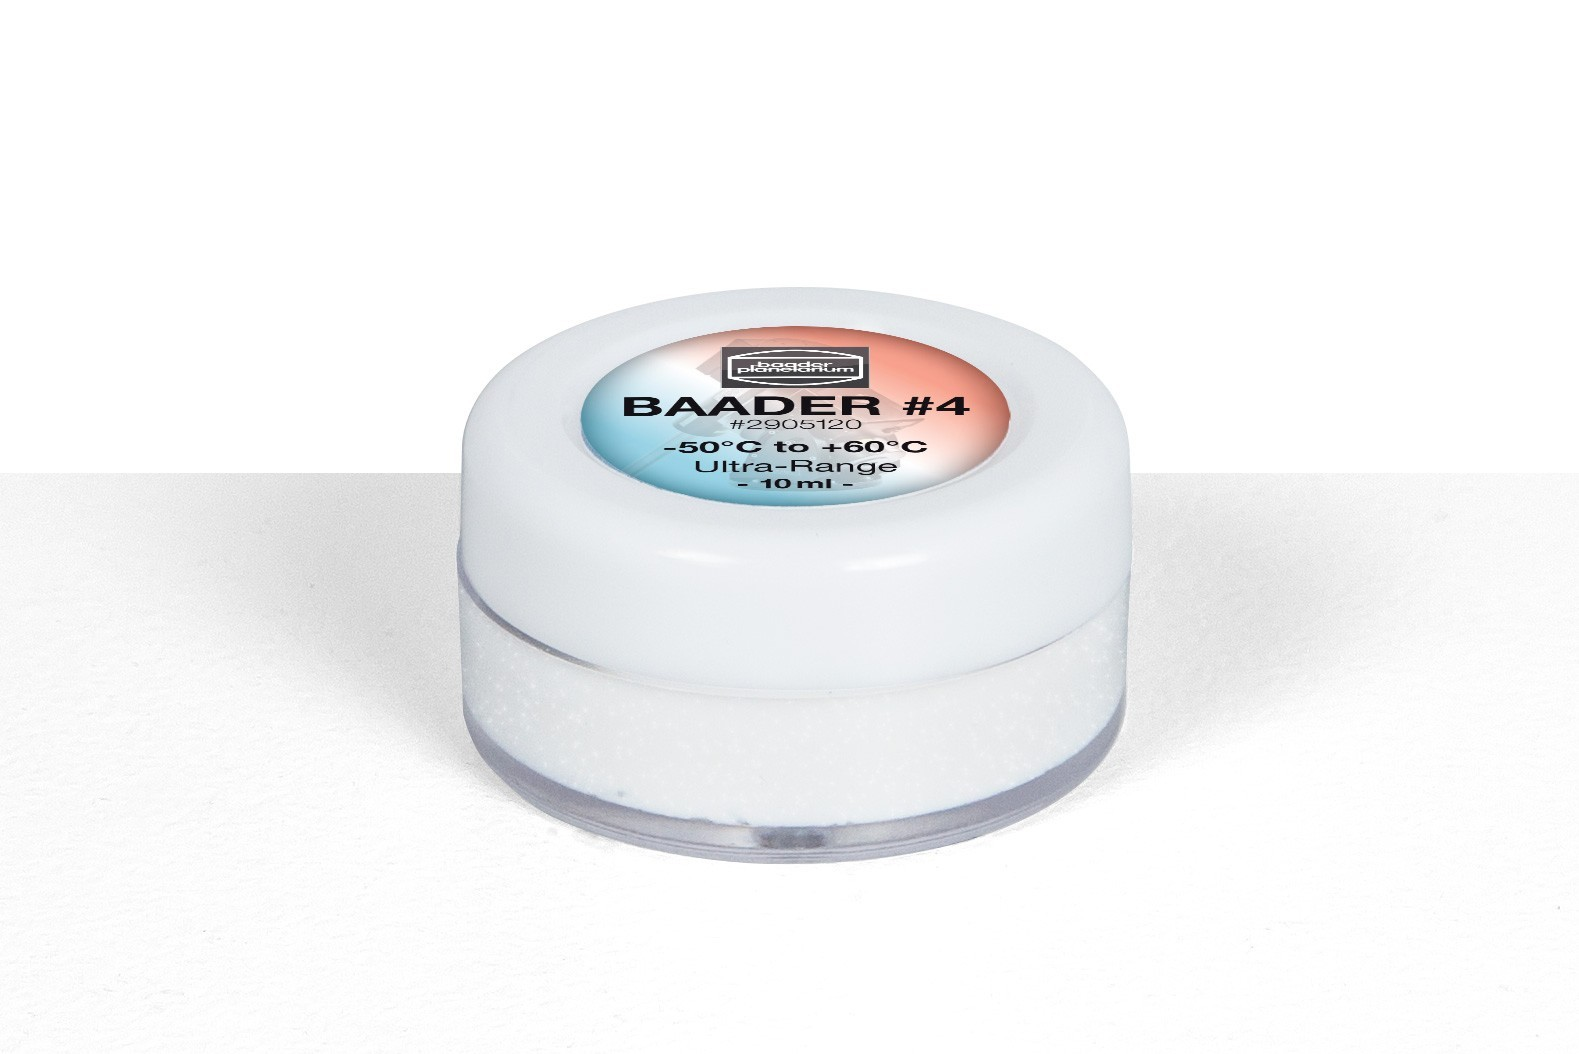 Baader Machine-Grease #4 Ultra-Range, from -50°C up to +60°C - wide stretched synthetic grease with constant viscosity across an extremely large temperature-range. Especially suitable for use in the mirror sliding